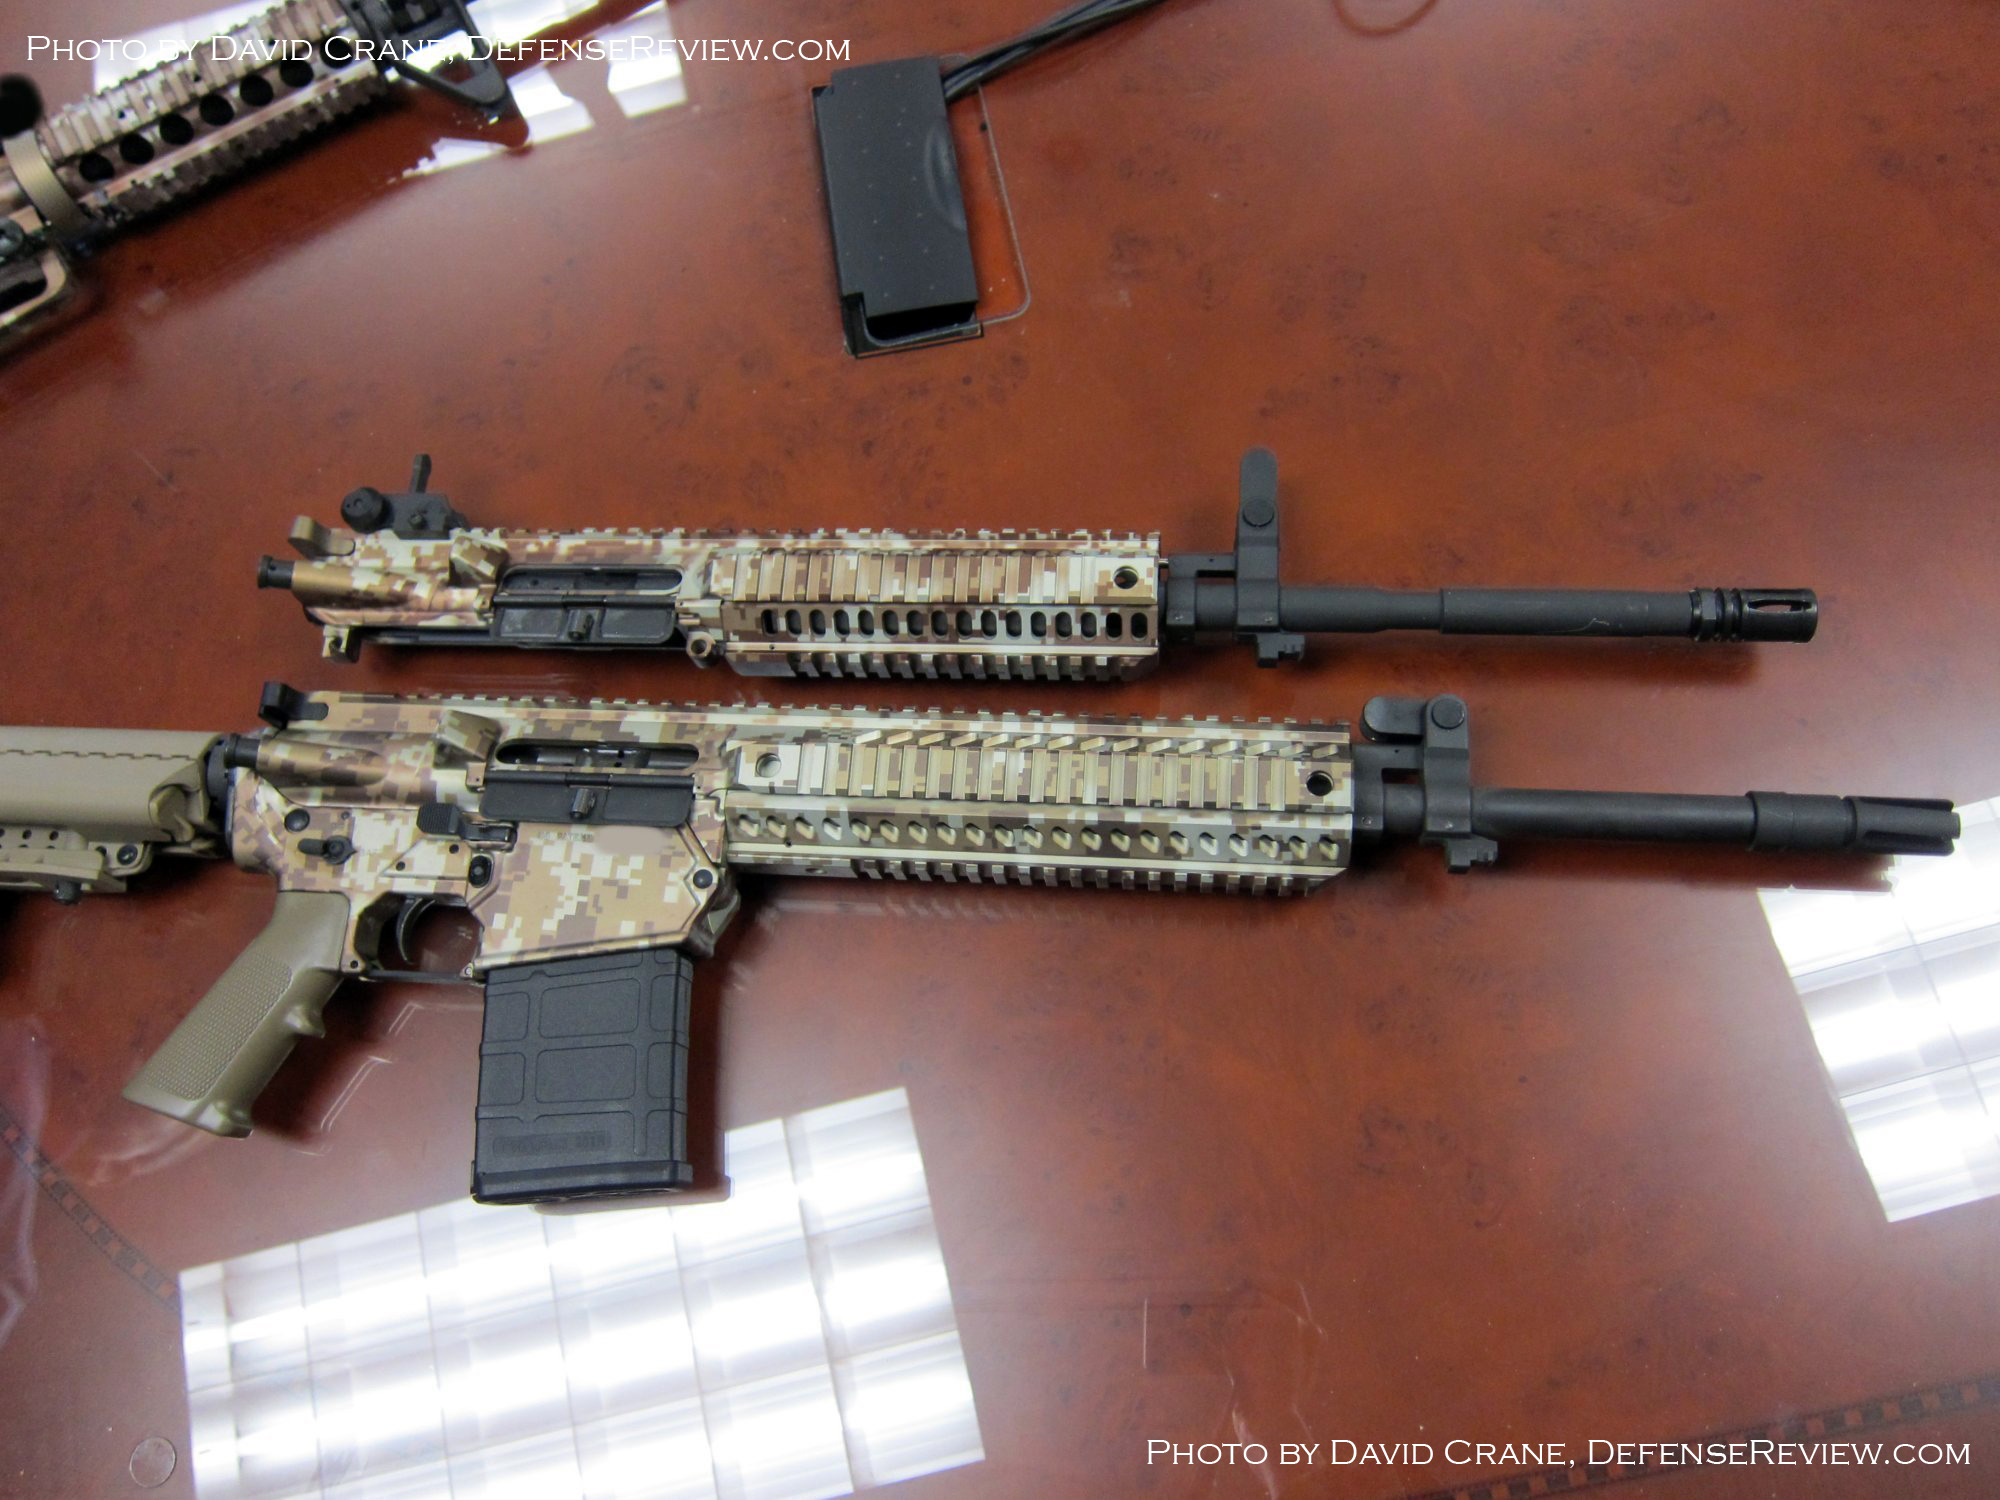 Colt CM901 AR Carbine SBR 7.62mm David Crane DefenseReview.com 27 <!  :en  >DR Exclusive First Look!: SCAR Who? Meet the Colt Modular Carbine (CMC) Model CM901 Multi Caliber 7.62mm NATO Battle Rifle / 5.56mm NATO Assault Rifle for U.S. Military Special Operations Forces (SOF) and General Infantry Forces (GIF). DefenseReview (DR) Reports (Photos and Video!) <!  :  >